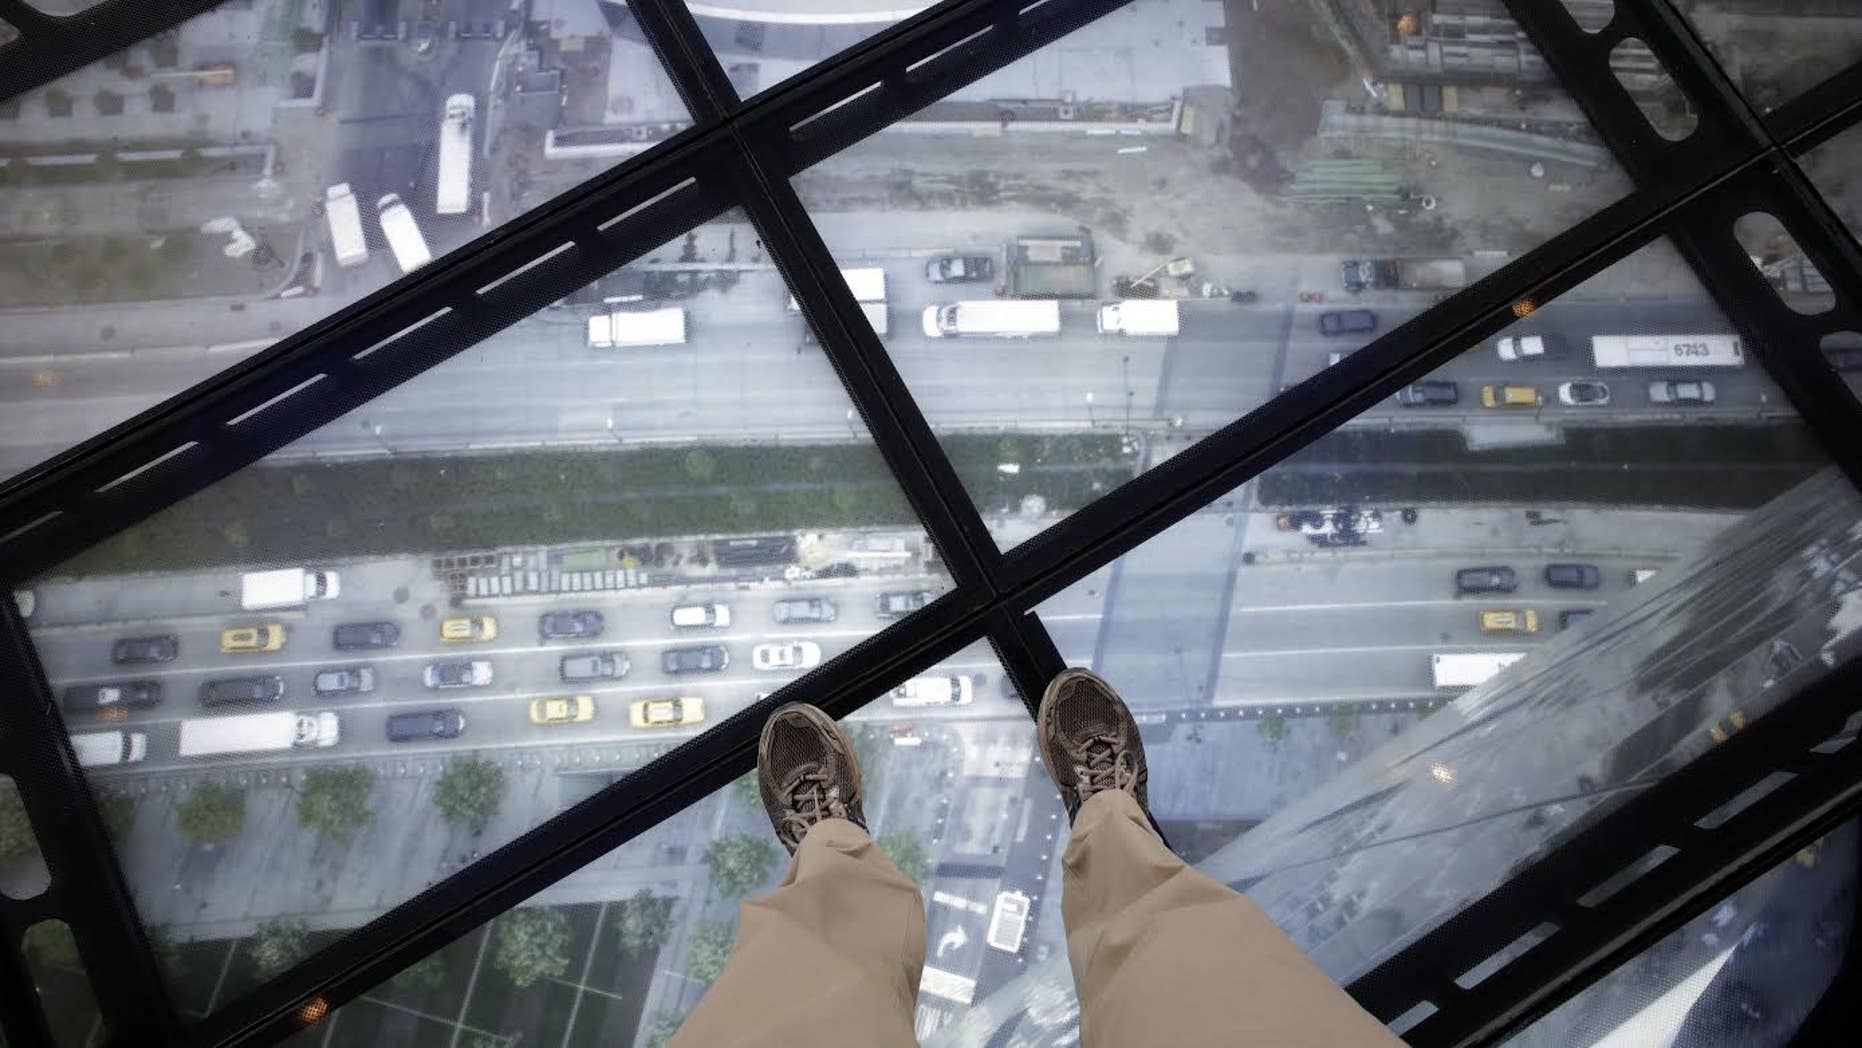 A view through the Sky Portal shows a live video view of the streets below from One World Observatory, Wednesday, May 20, 2015, in New York. The observatory atop the 104-story One World Trade Center opens to the public on May 29. (AP Photo/Mark Lennihan)